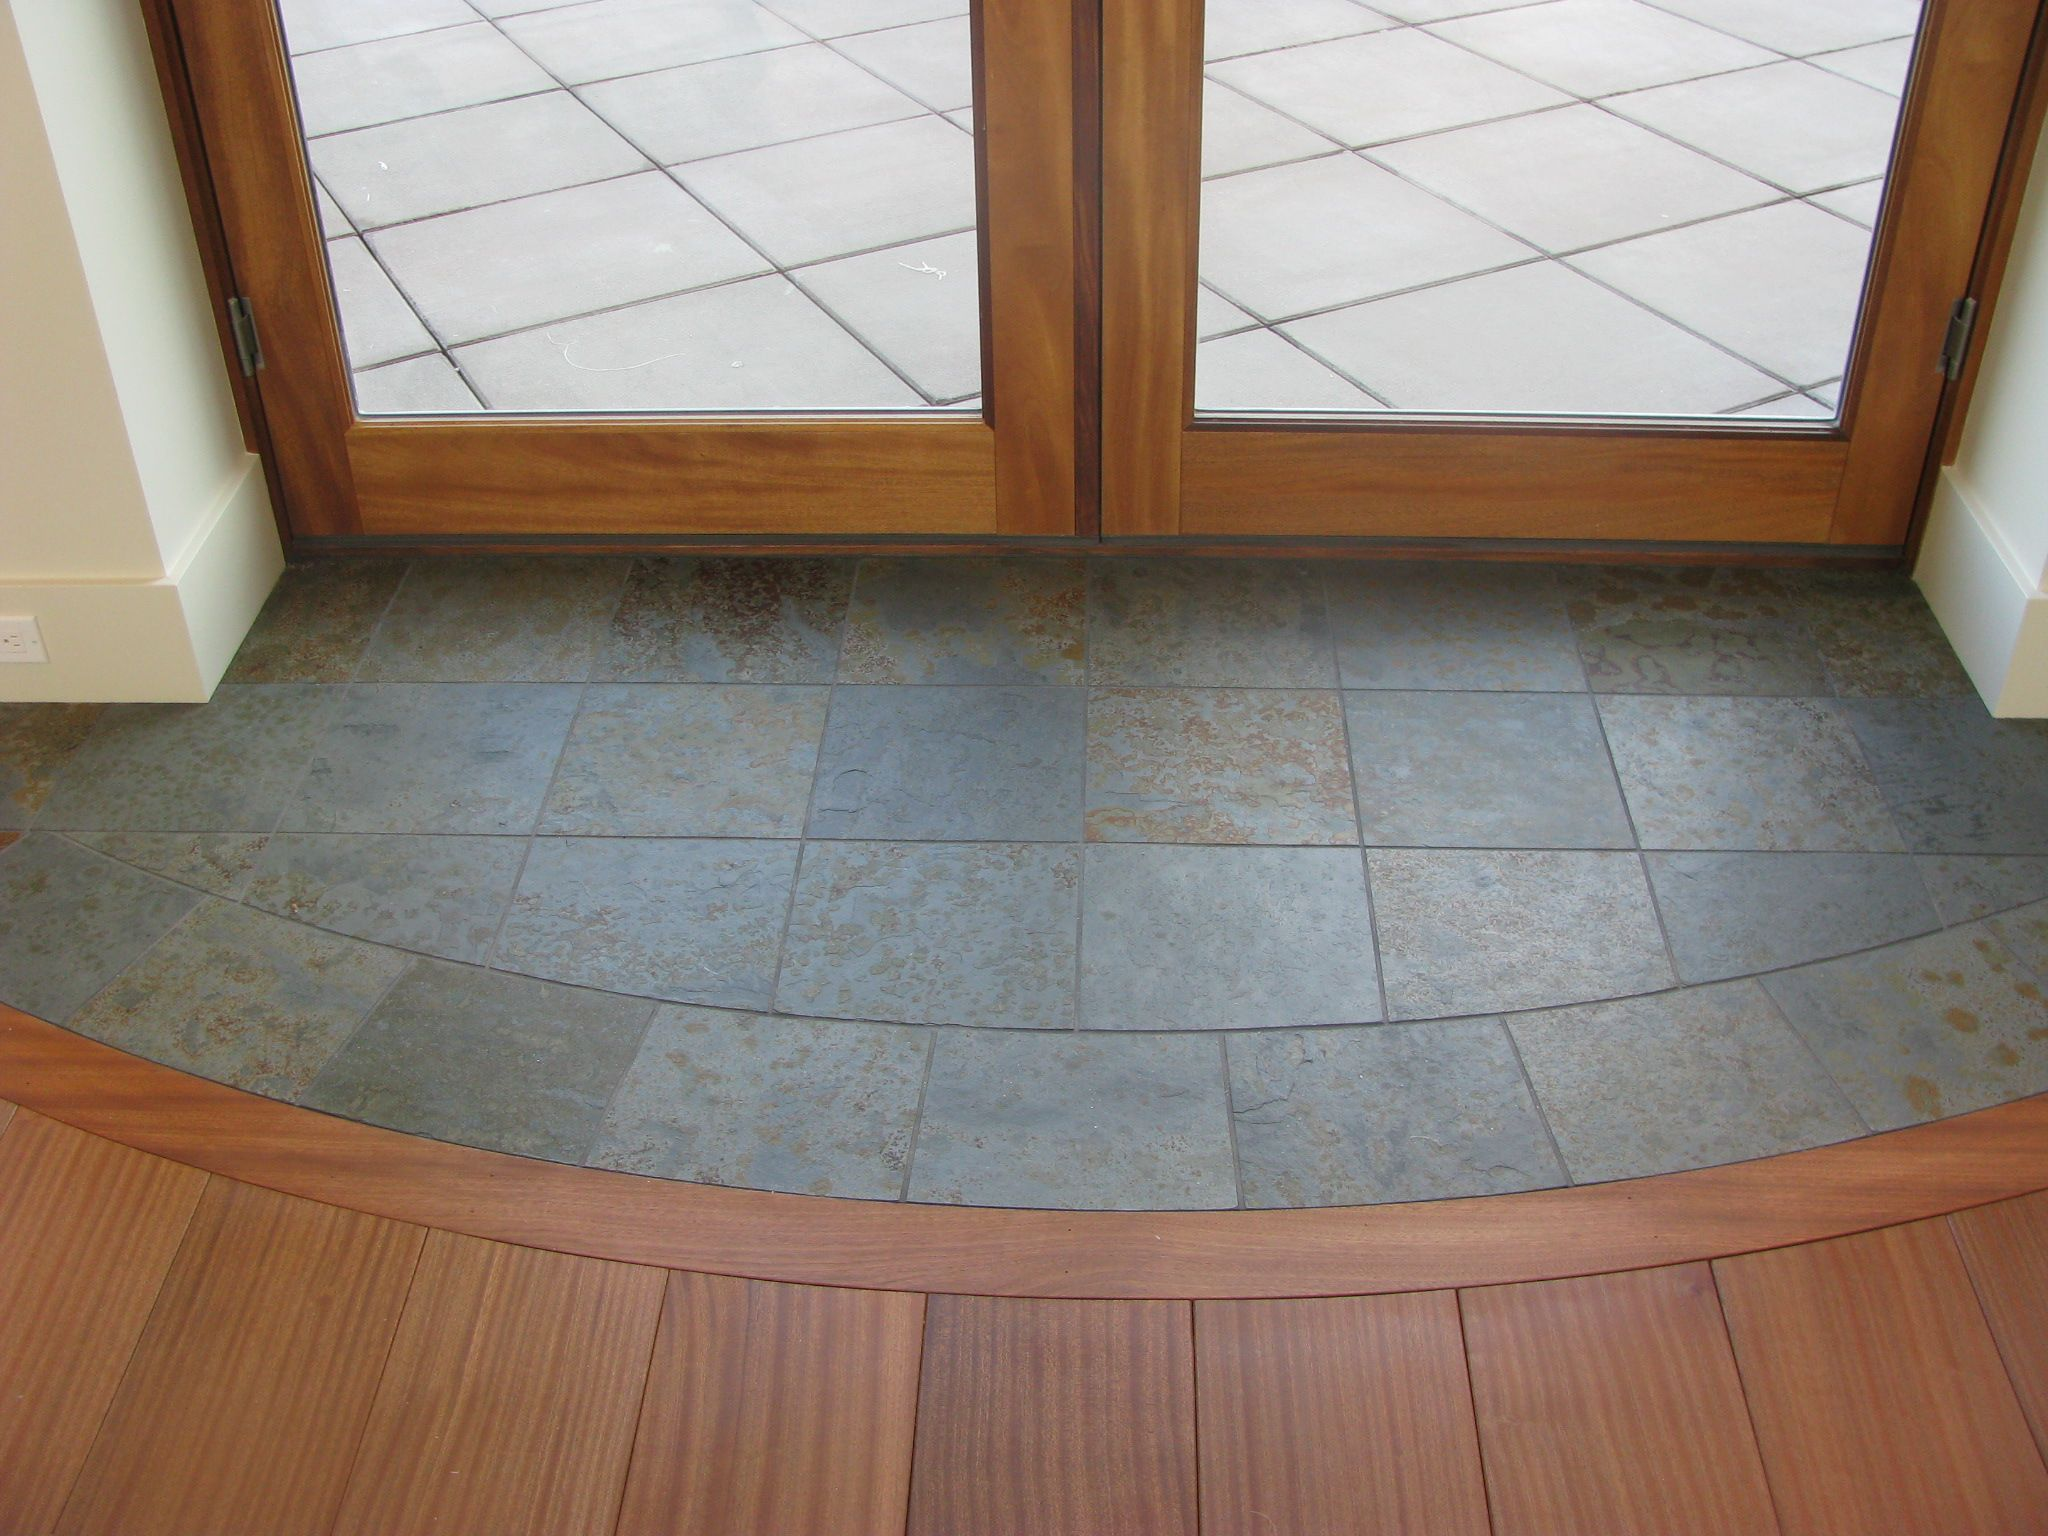 Slate entryway to protect hardwood floors at French Door. for when I finally rip all the tile and carpet out and do hardwood! Love the pattern flow into the ... : tile door - Pezcame.Com